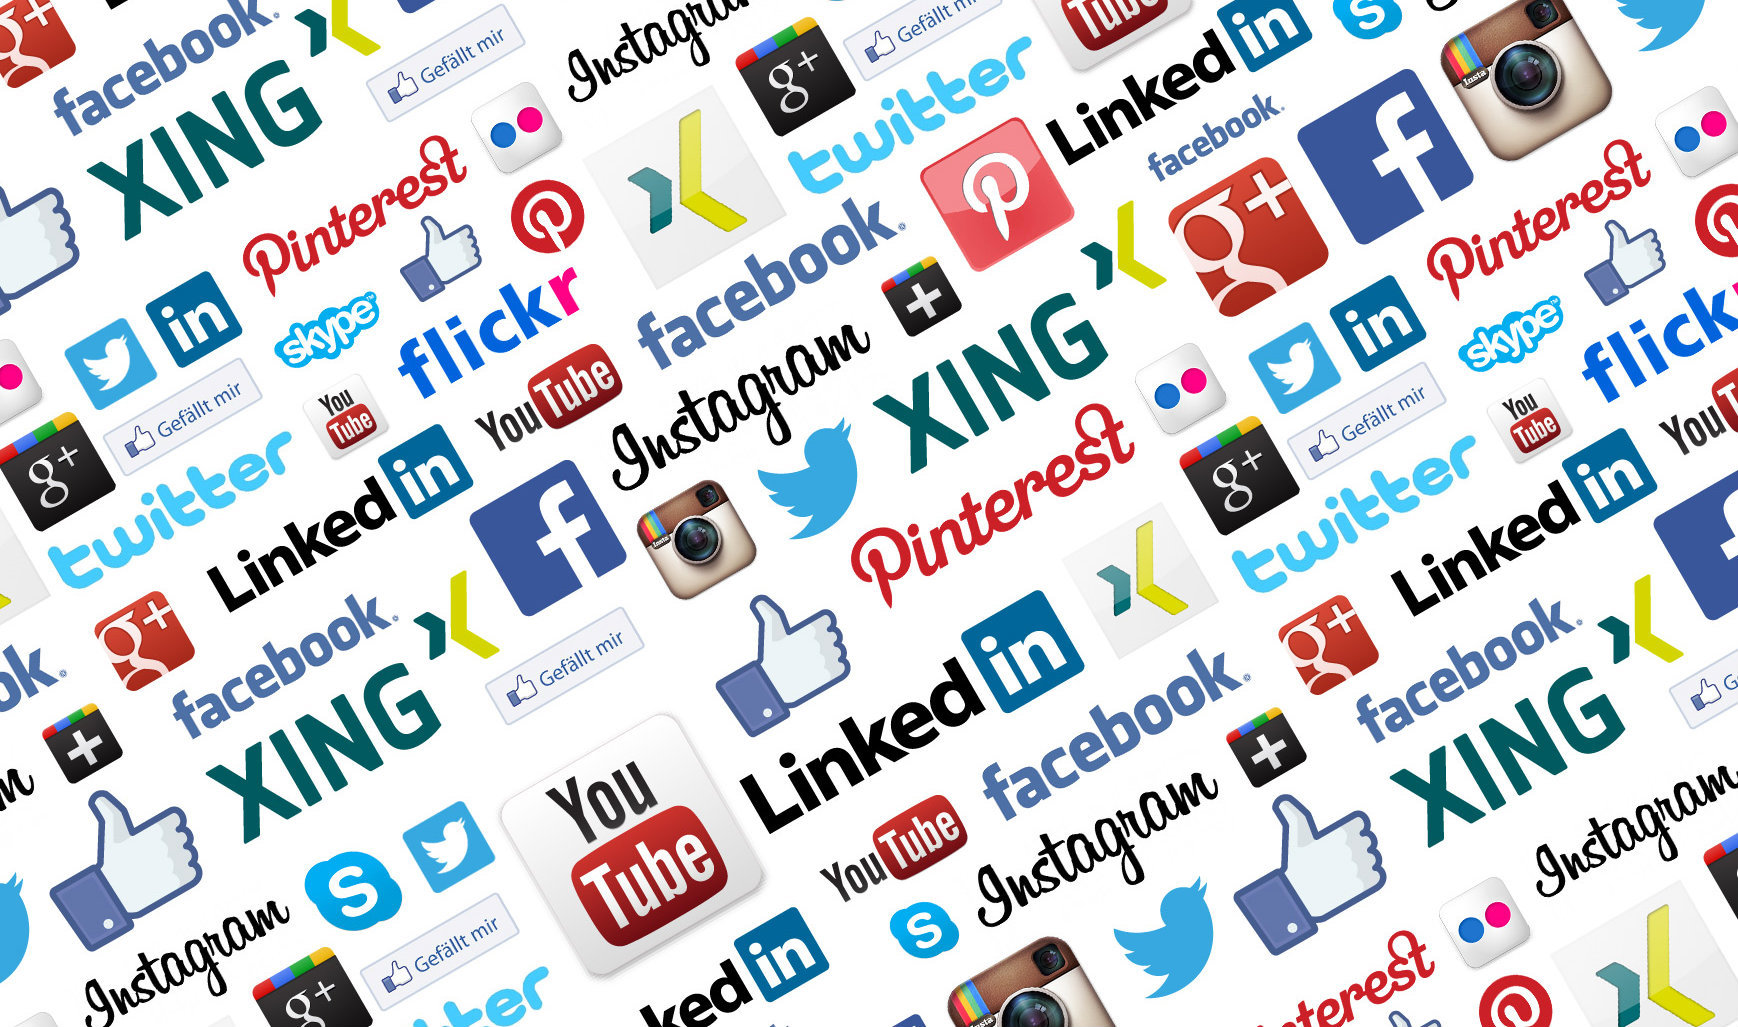 The need for Social Media presence for all businesses